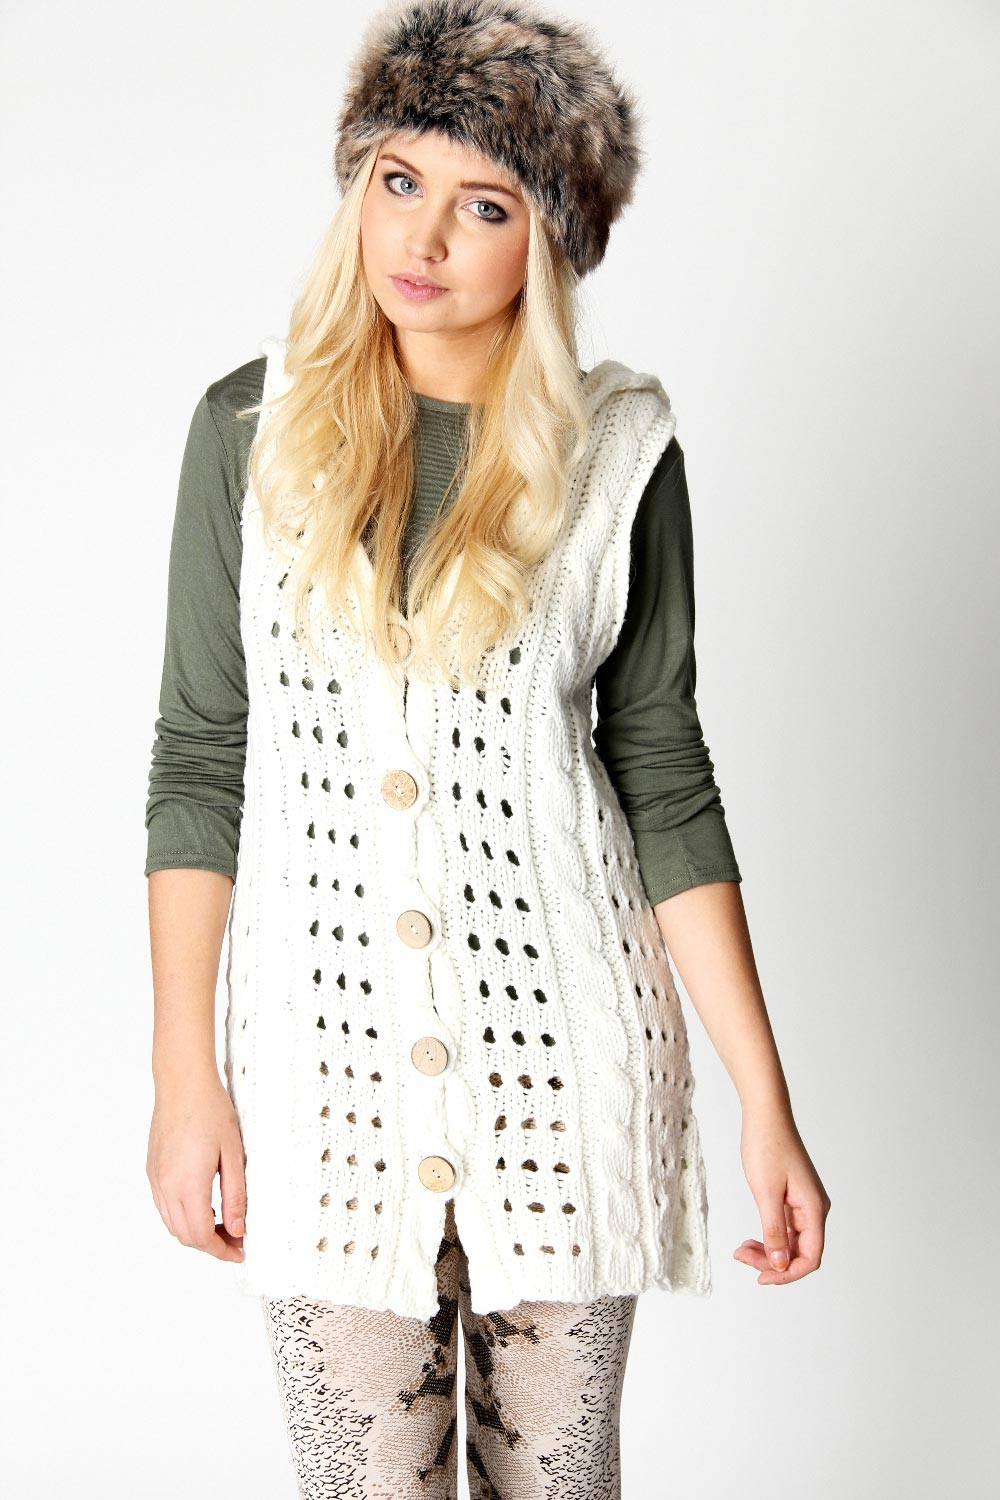 Sleeveless solid open cardigan with a draped body / Loose cut, comfortable fit. Anna-Kaci Womens Sleeveless Open Front Crochet Shawl Cardigan Bikini Cover Up. by Anna-Kaci. $ - $ $ 18 $ 22 99 Prime. FREE Shipping on eligible orders. Some sizes/colors are Prime eligible.